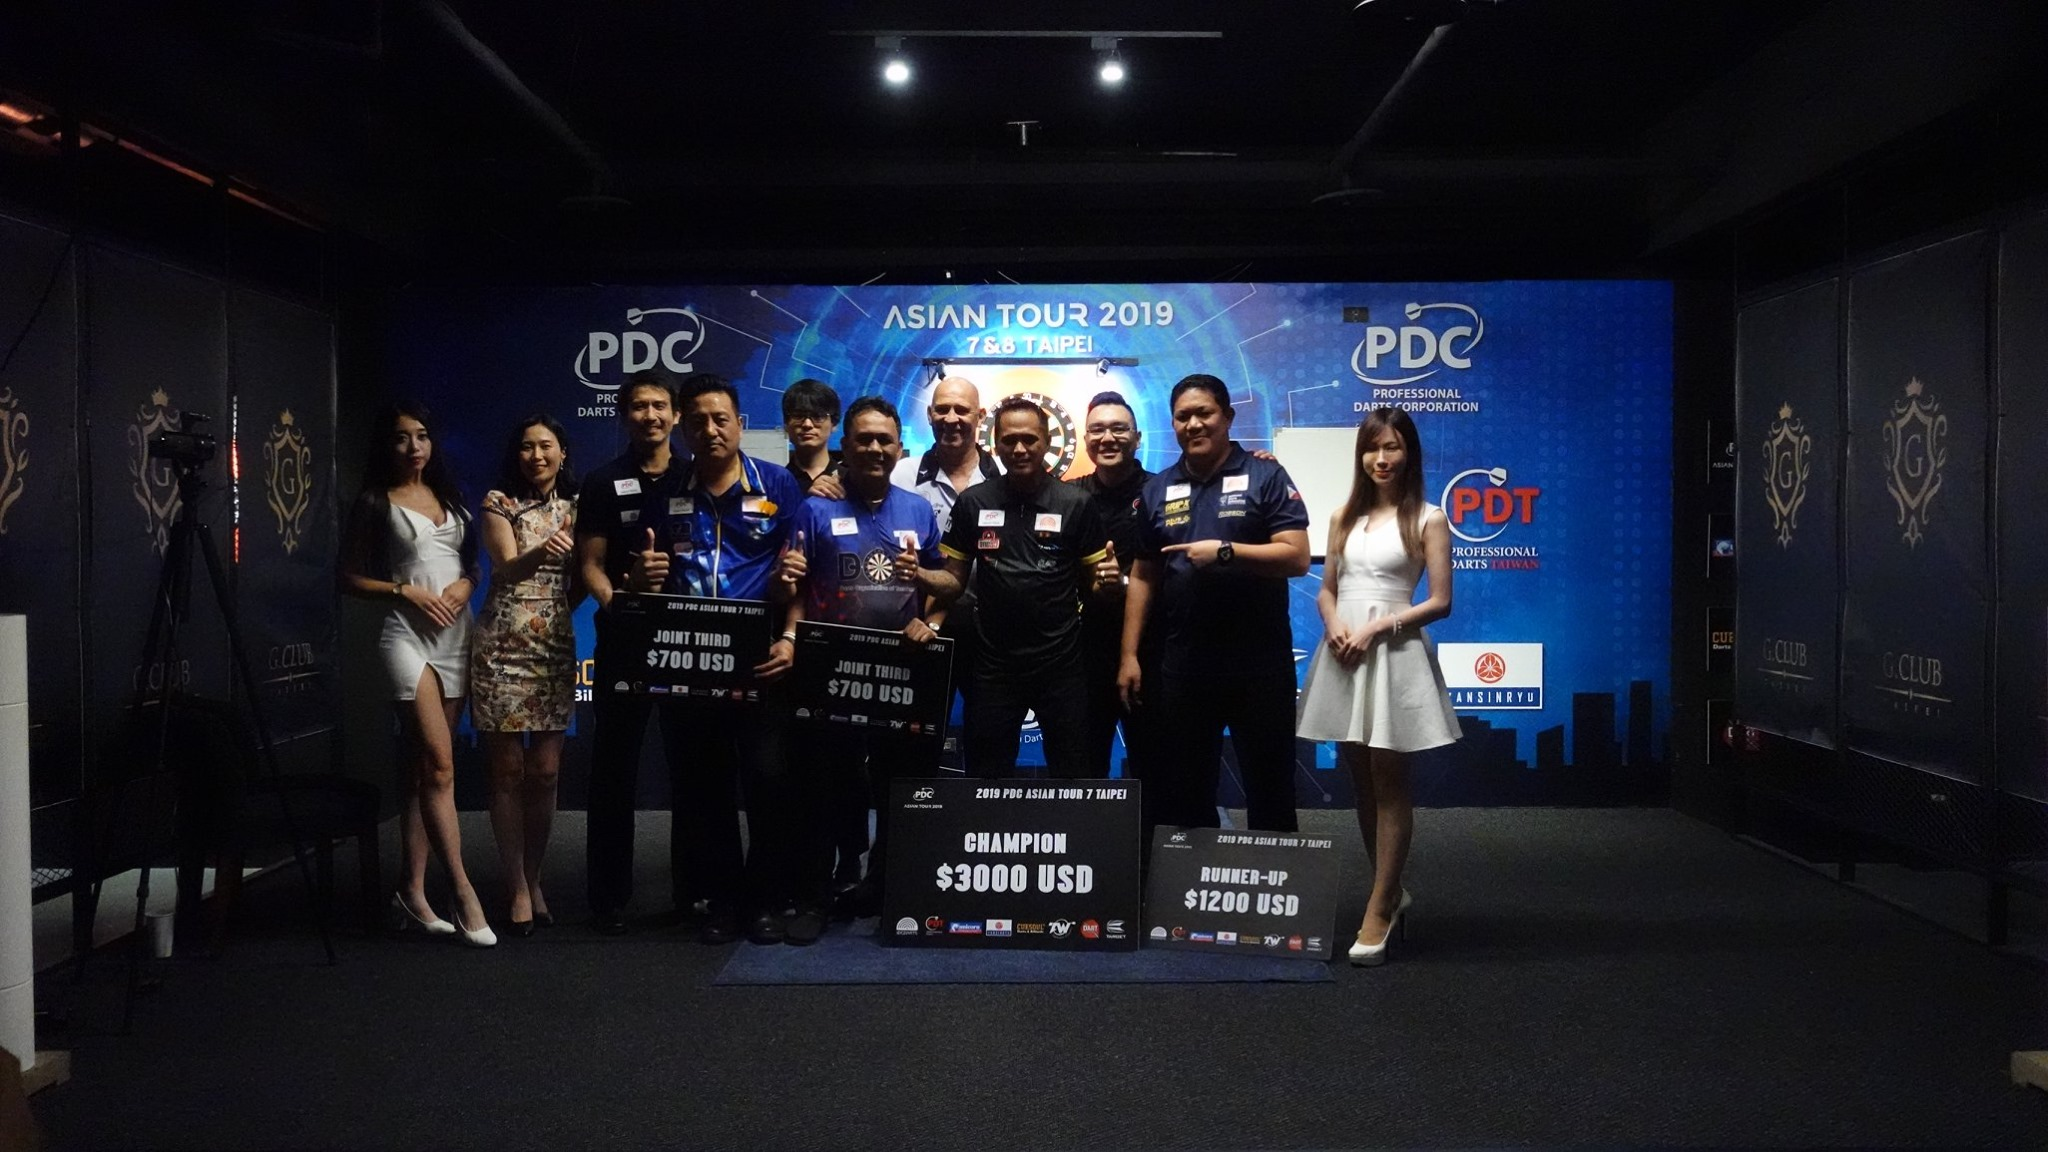 【PDC Asian Tour 2019】STAGE 7